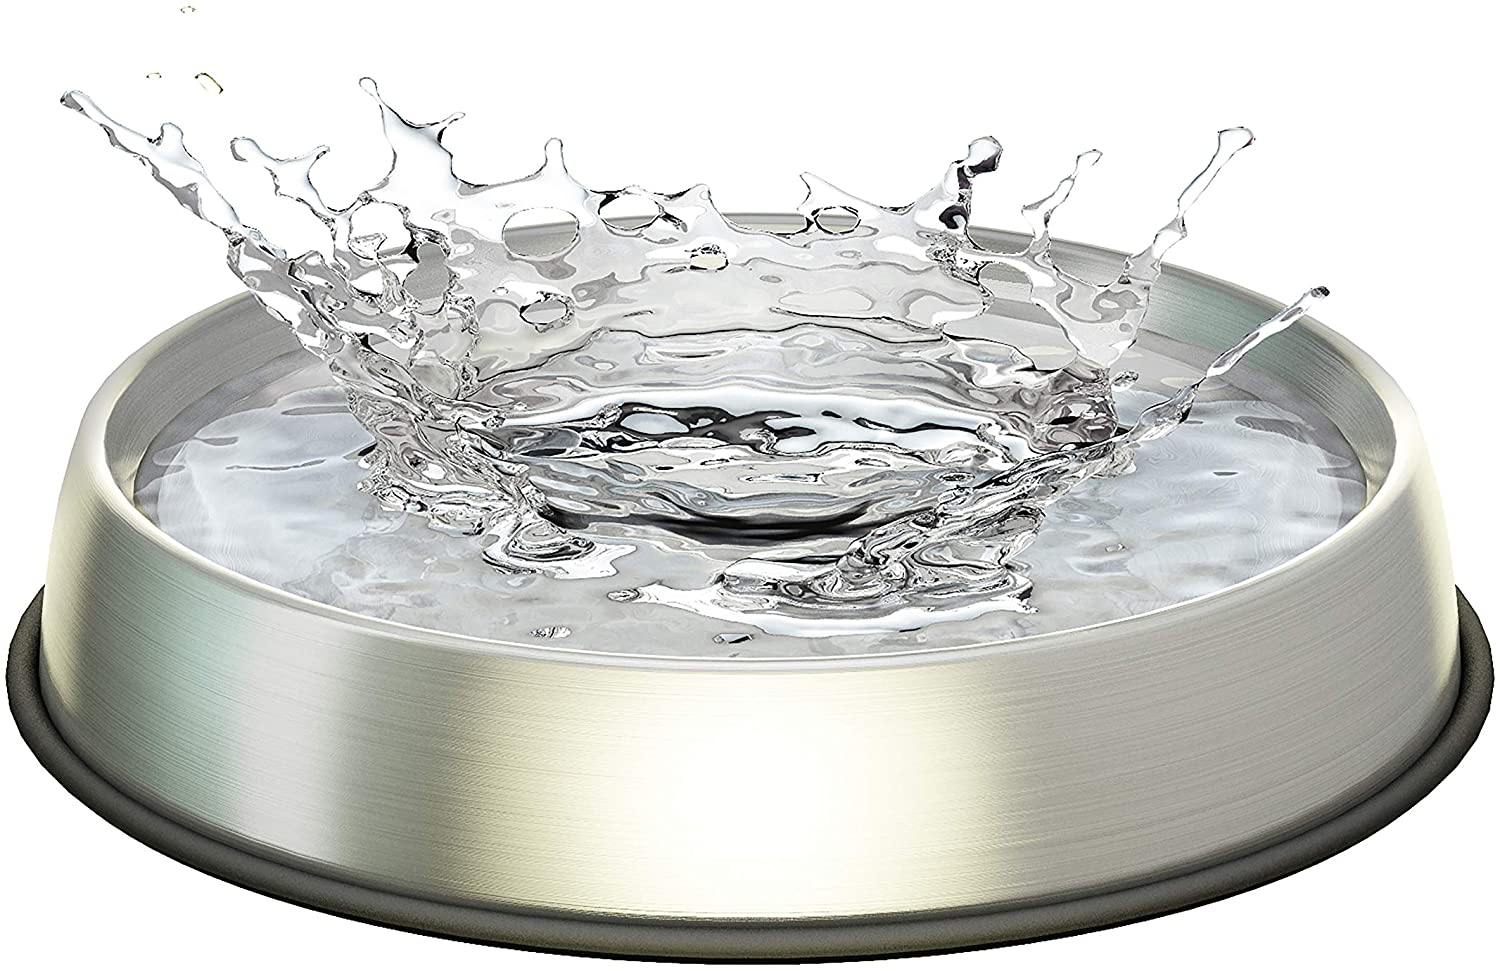 Dr. Catsby whisker relief water bowl